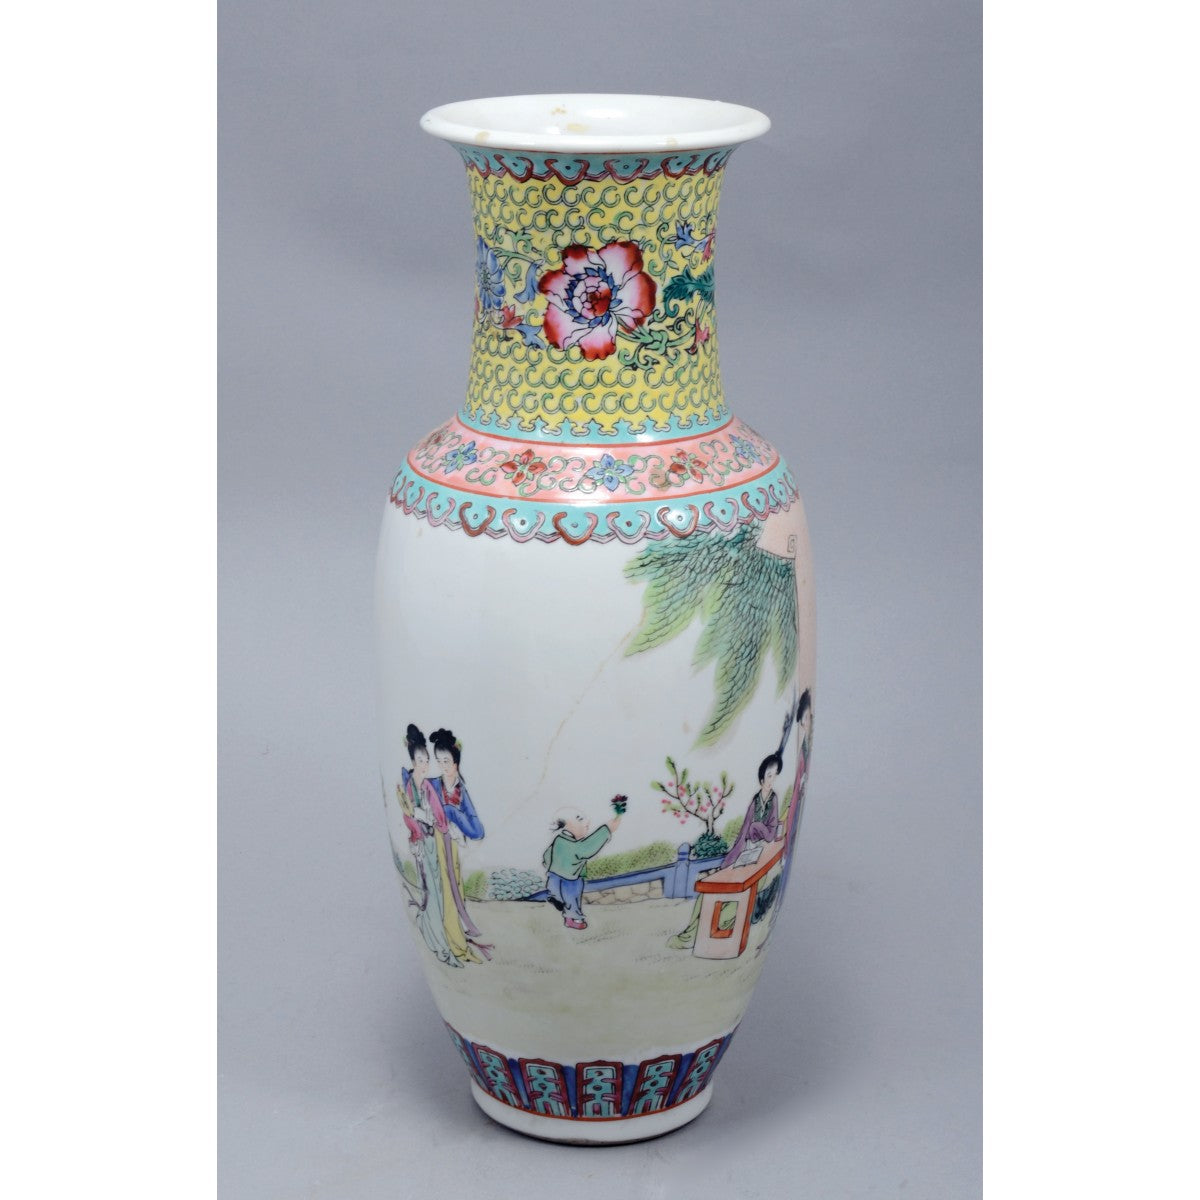 Chinese Porcelain Famille Rose Vase, Decorated with Flowers and Figures